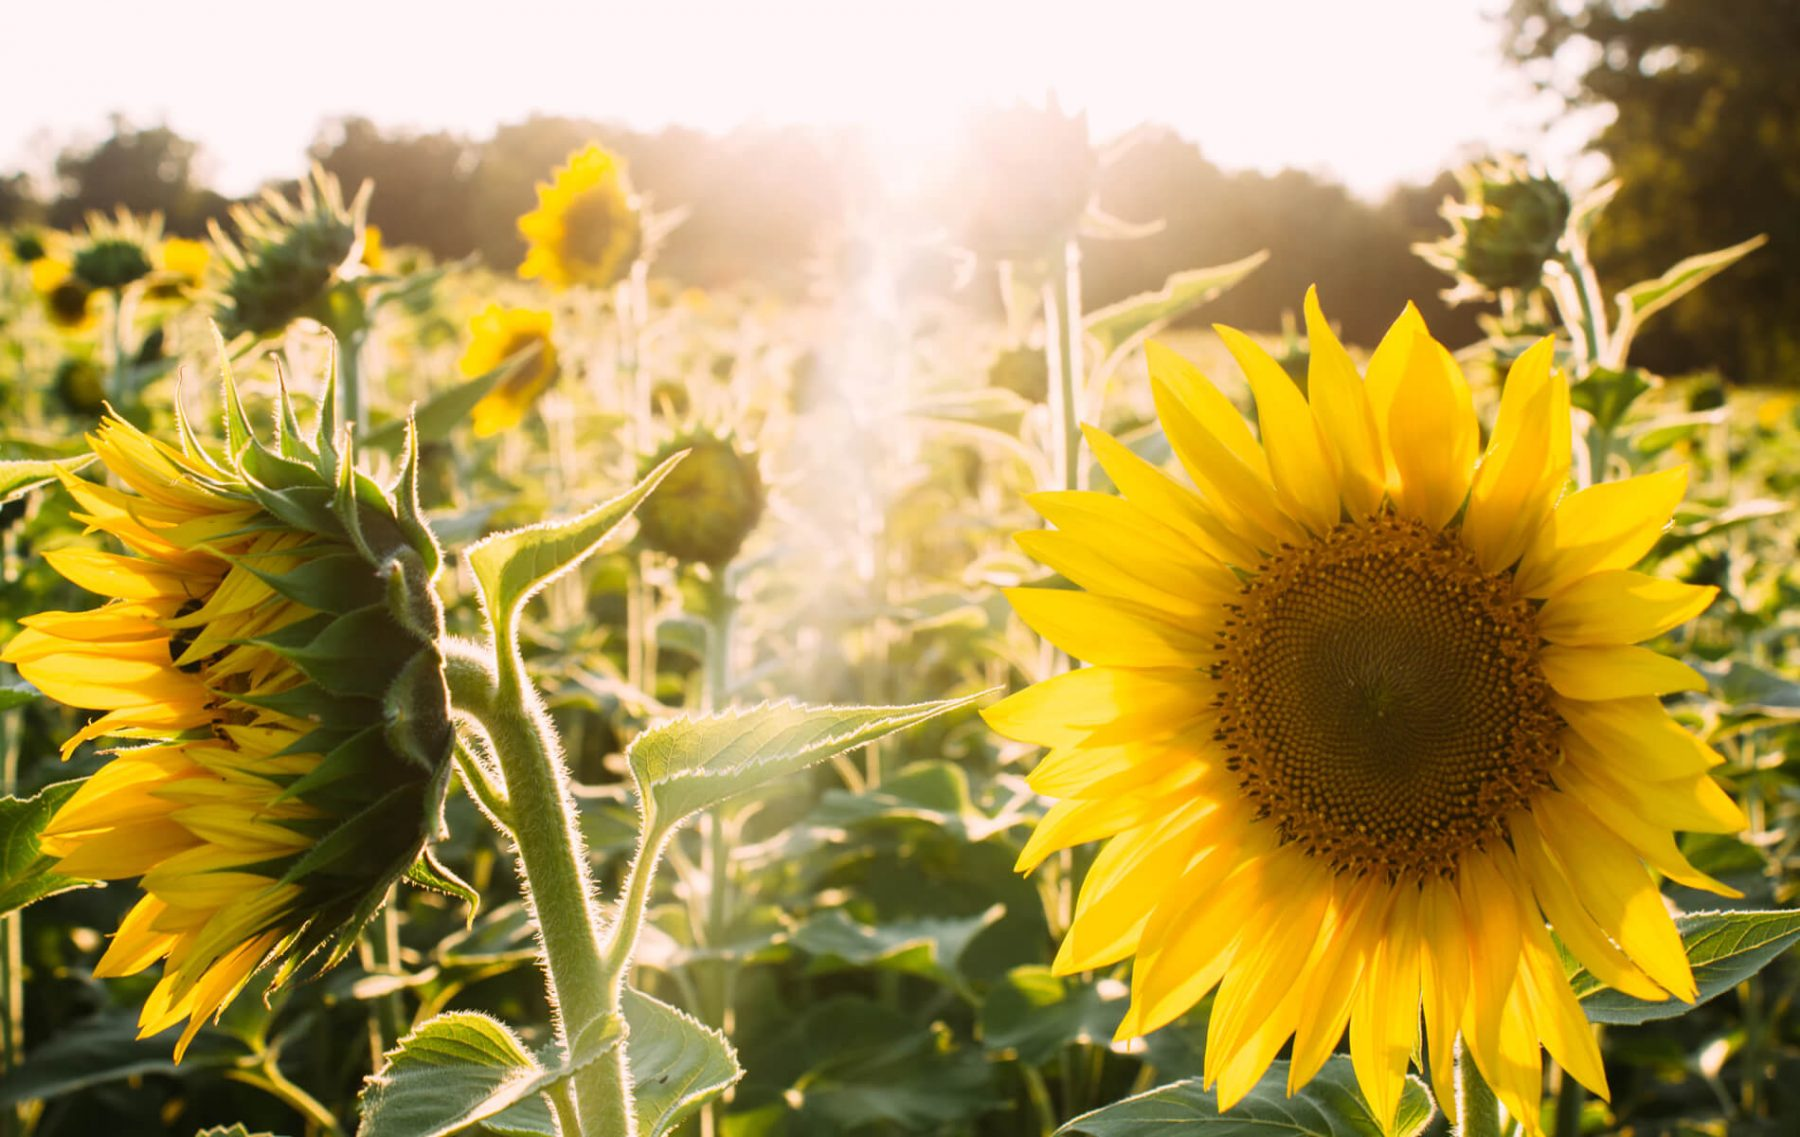 Patch of sunflowers